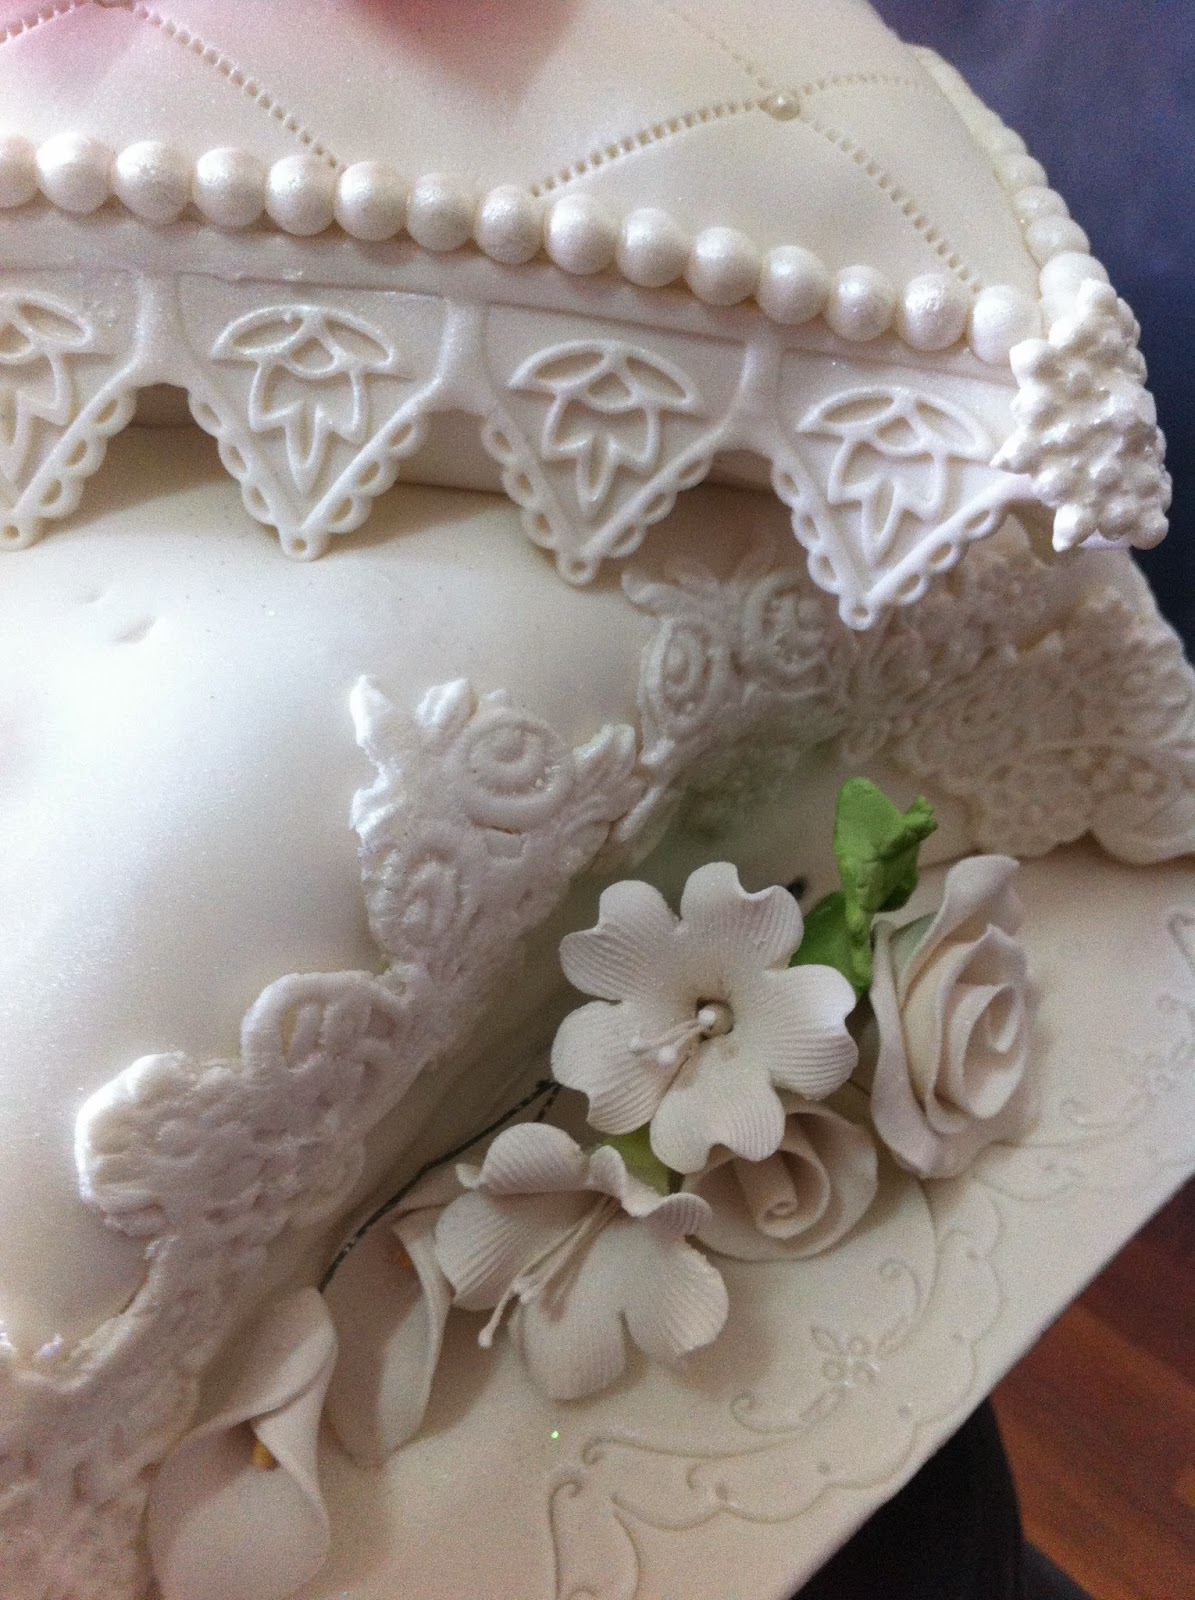 fadeliciouscakes PILLOW WITH SHOES WEDDING CAKE